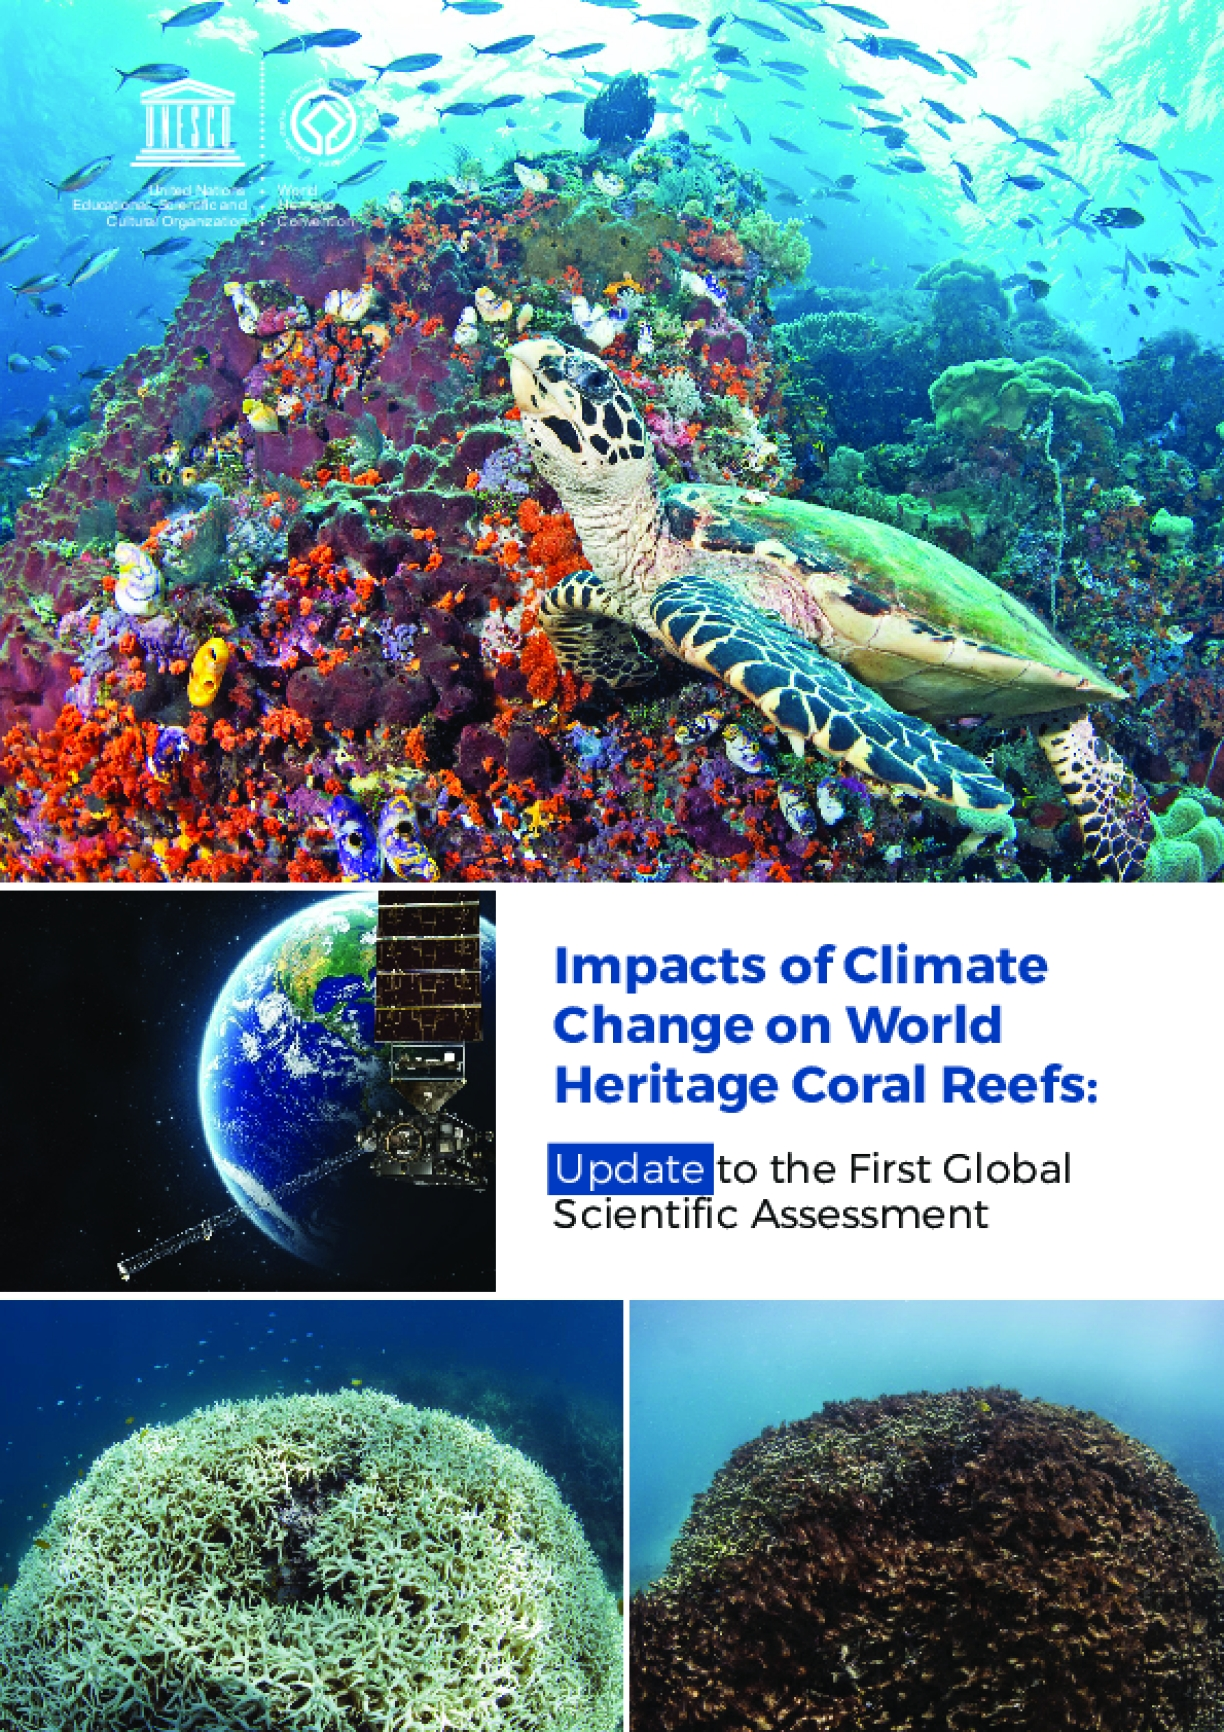 Impacts of Climate Change on World Heritage Coral Reefs: Update to the First Global Scientific Assessment